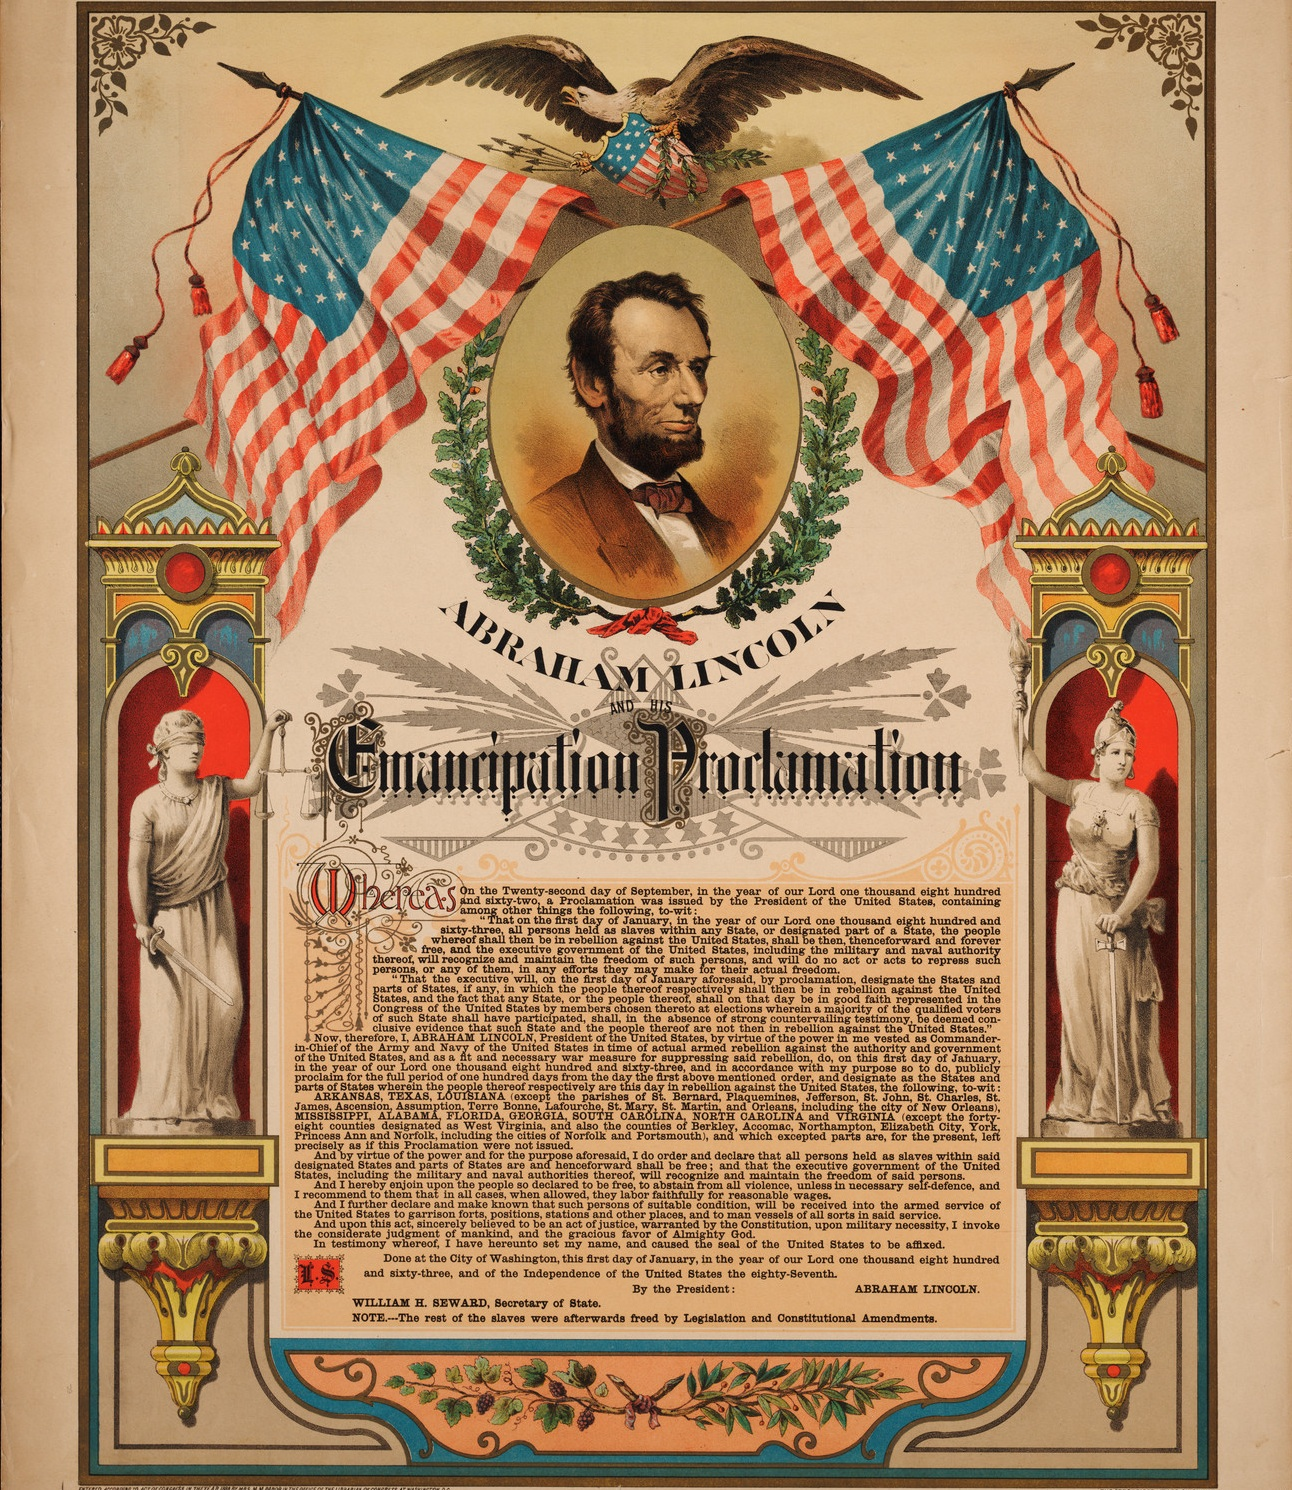 WholeDude - Whole Slave: United States of America - A Slave Driver. The Emancipation Proclamation of President Abraham Lincoln has failed to abolish the practice of Slavery, Involuntary Servitude, and Forced Labor. These practices got resurrected and are introduced into the Union territory by the secular laws enacted by the US Congress which violate the Principle of Equality of Protection under Law.